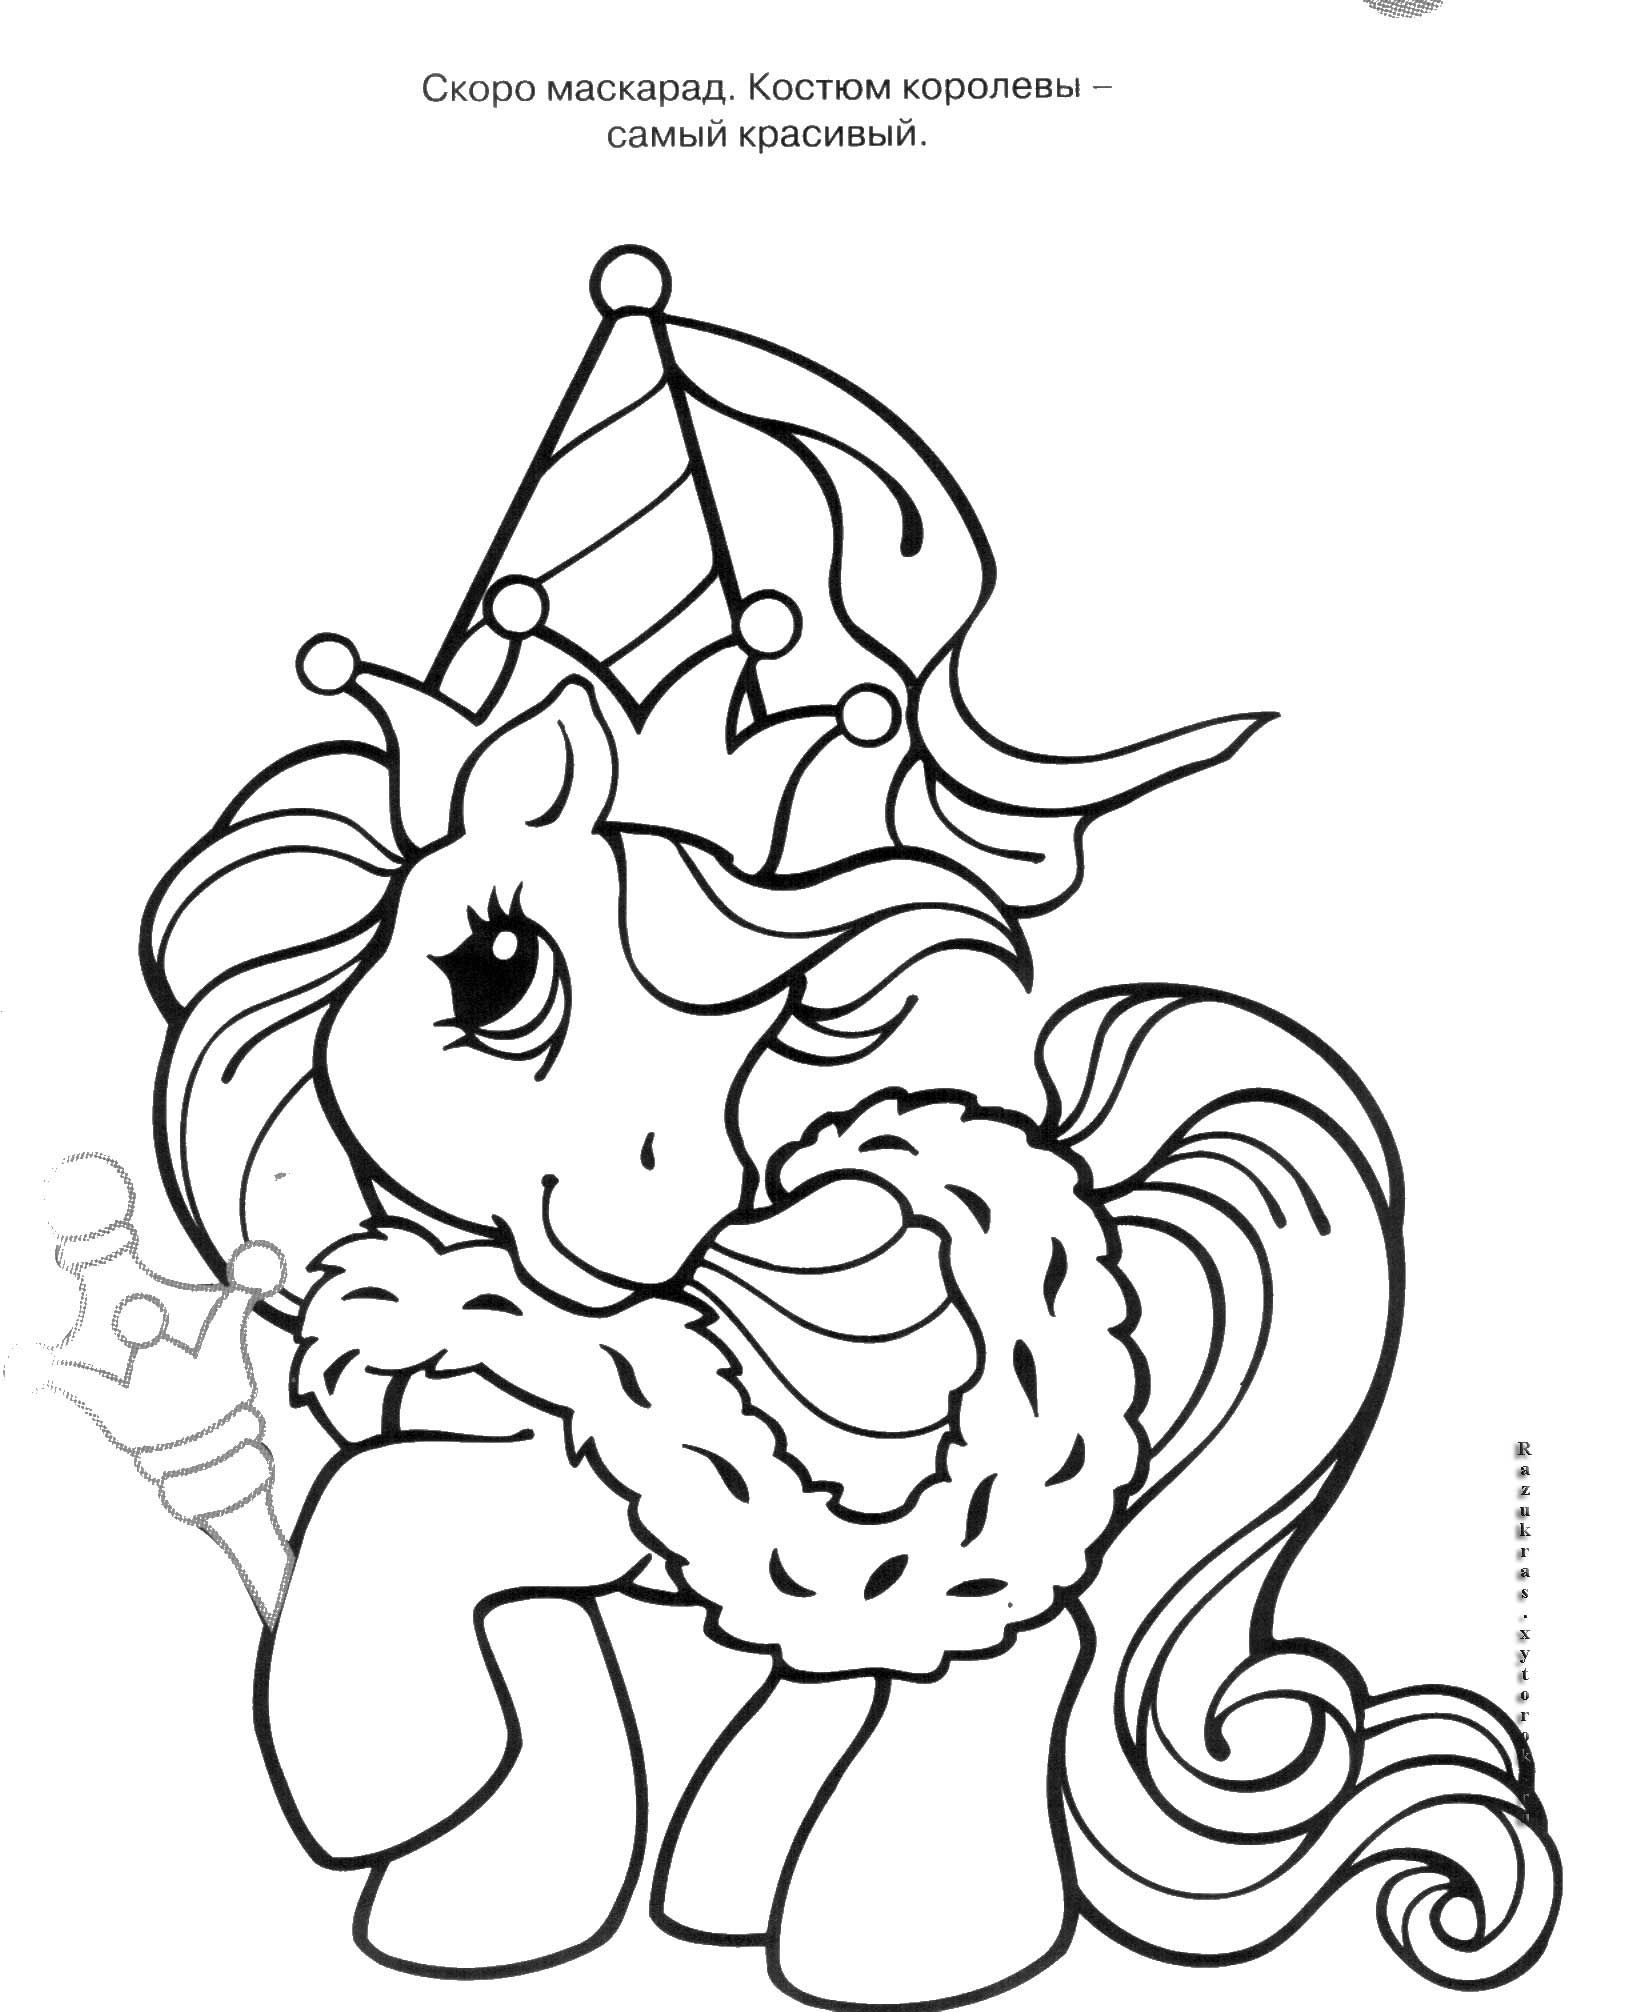 My Little Pony Coloring Pages - Pony Coloring Pages - Mlp coloring ... | 2012x1628